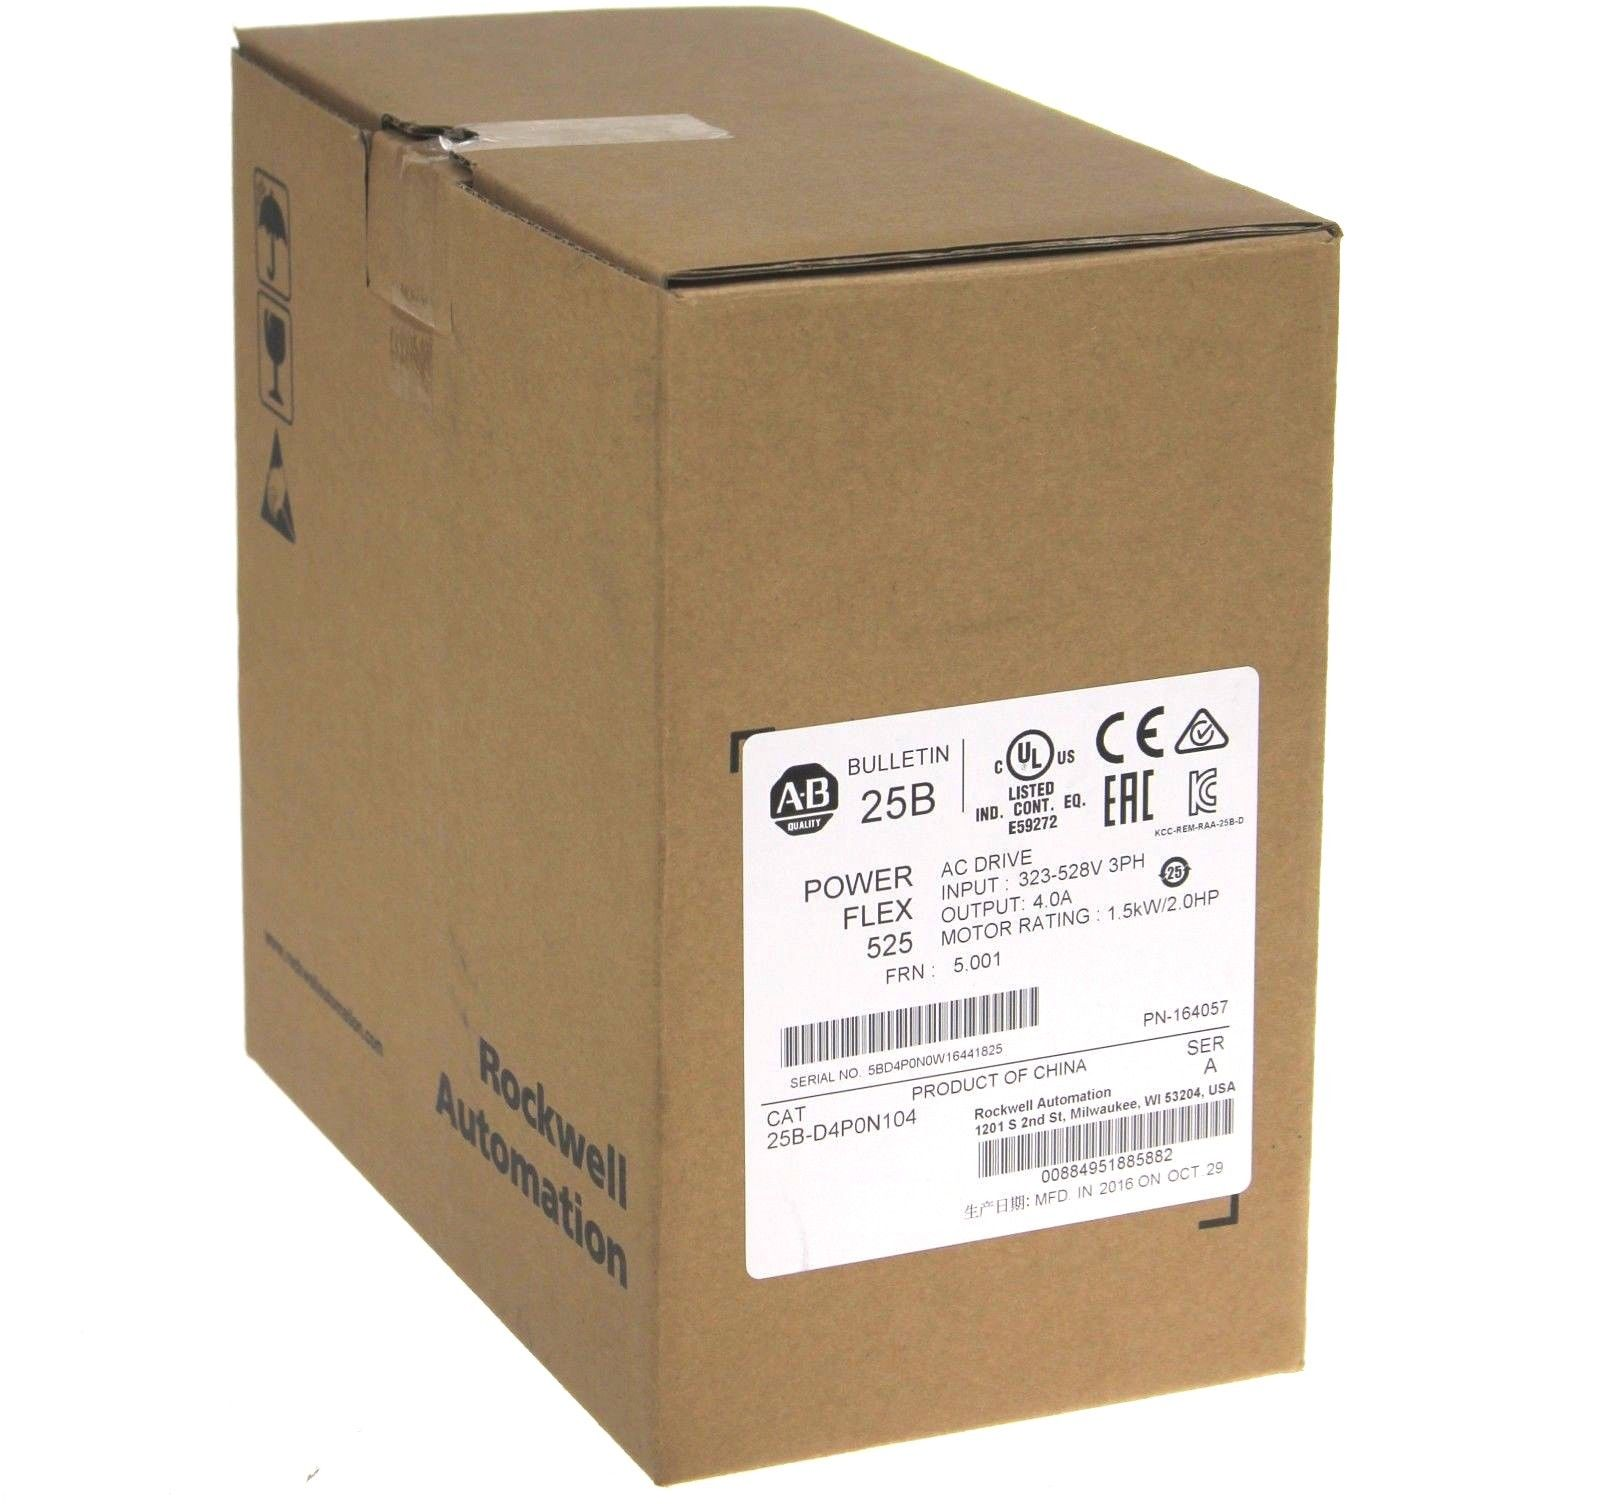 New 2016 Allen Bradley 25B-D4P0N104 PowerFlex 525 AC Drive Series A 2 HP